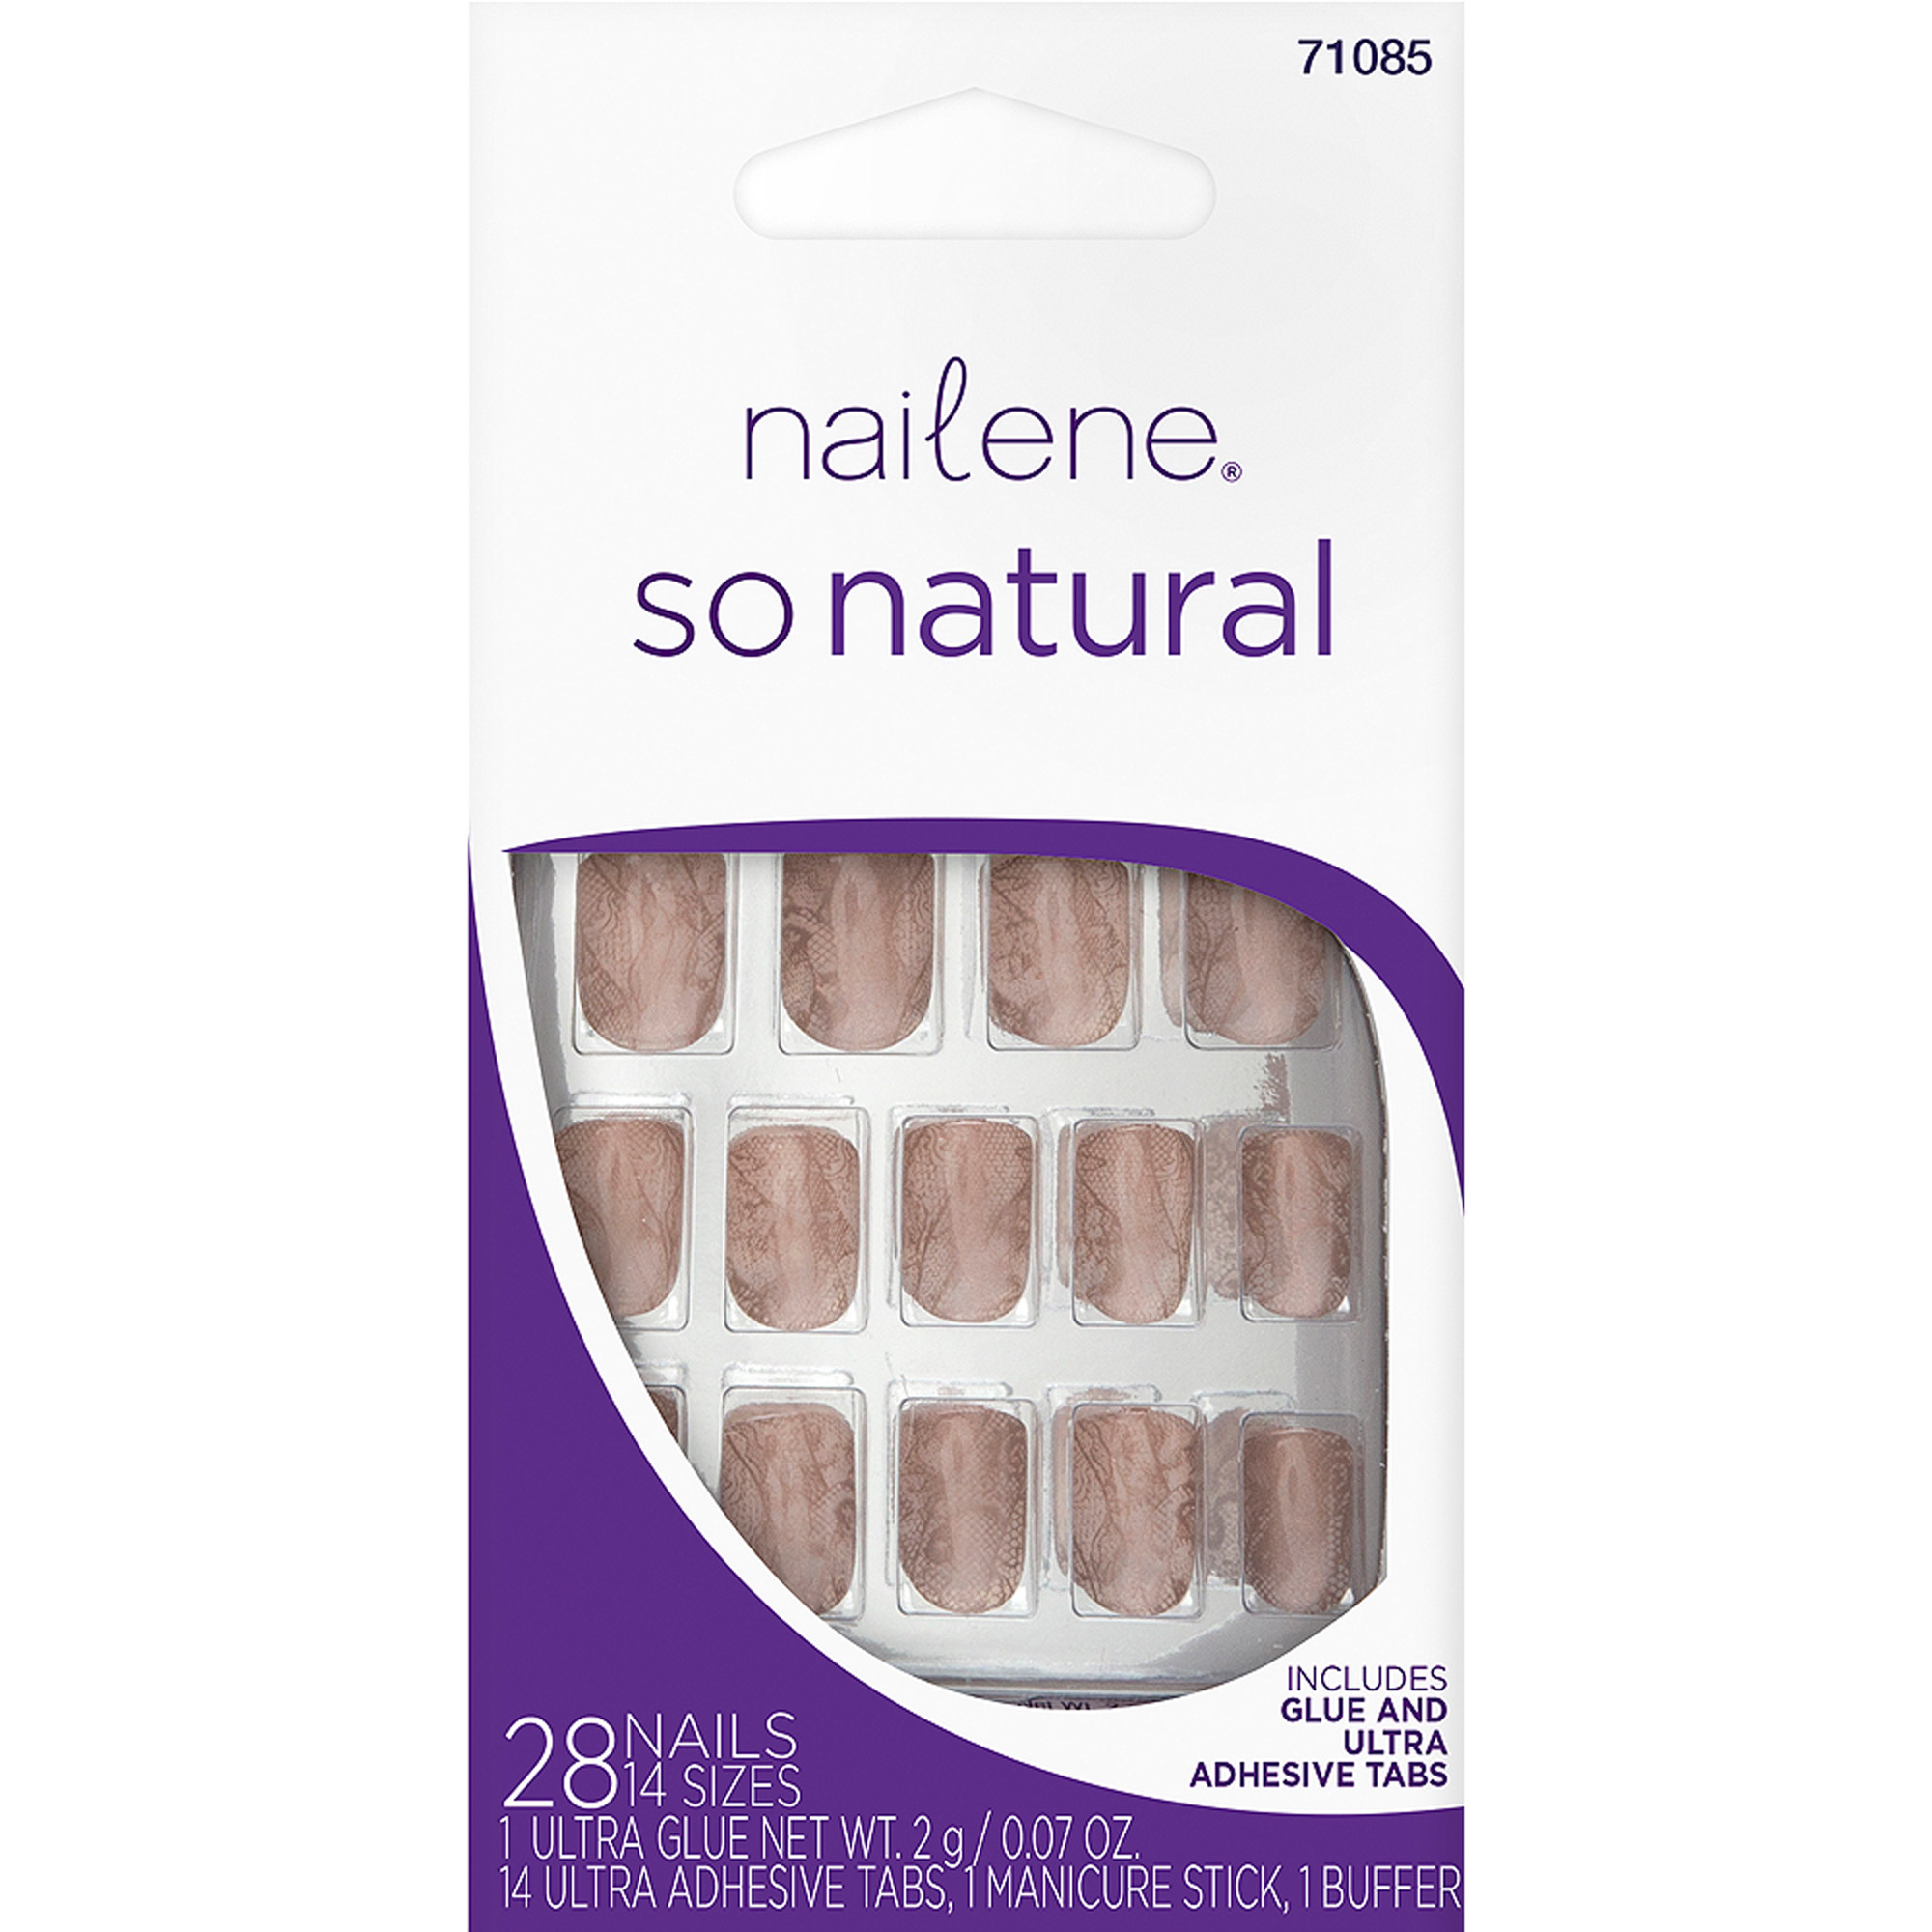 Nailene So Natural Lingerie Lace Glue-On Nails Set, 45 pc